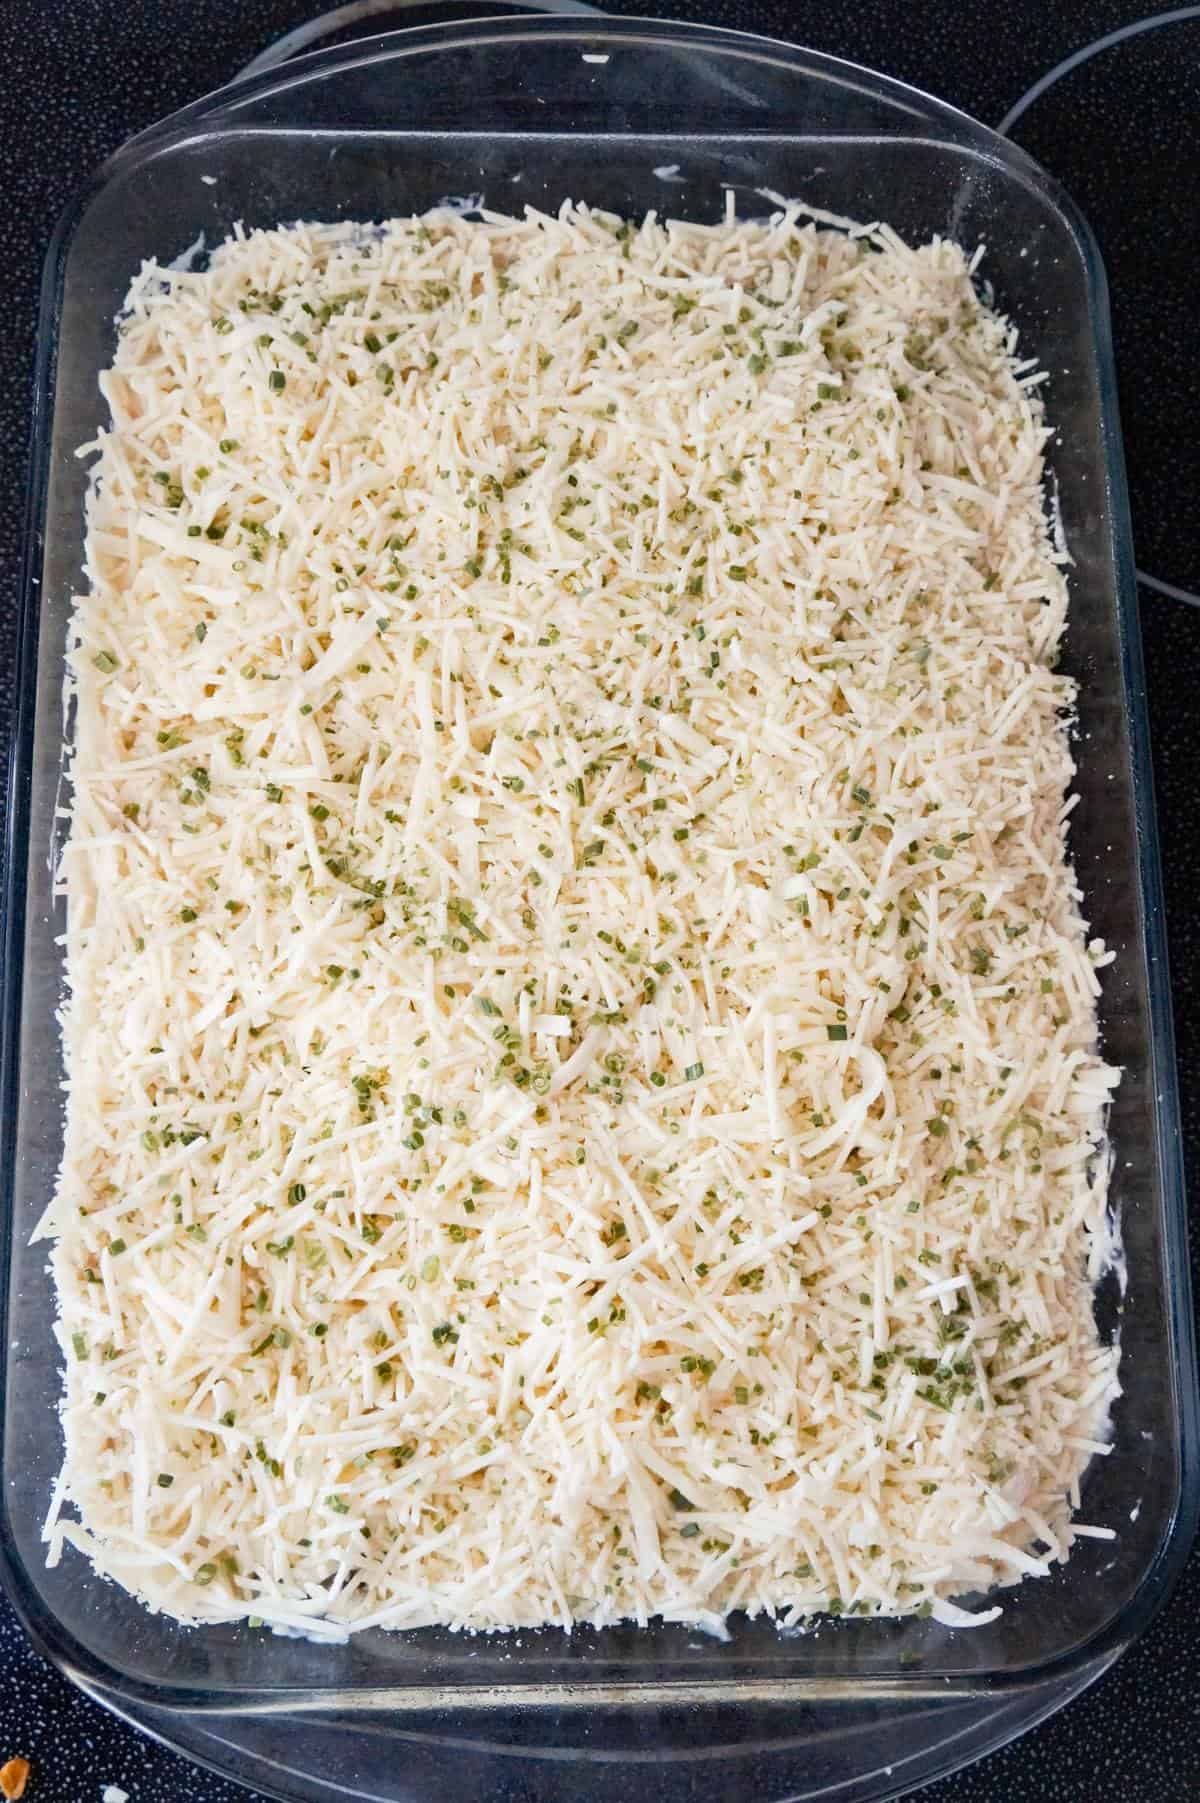 chopped chives, shredded Parmesan and shredded Mozzarella on top of chicken spaghetti before baking